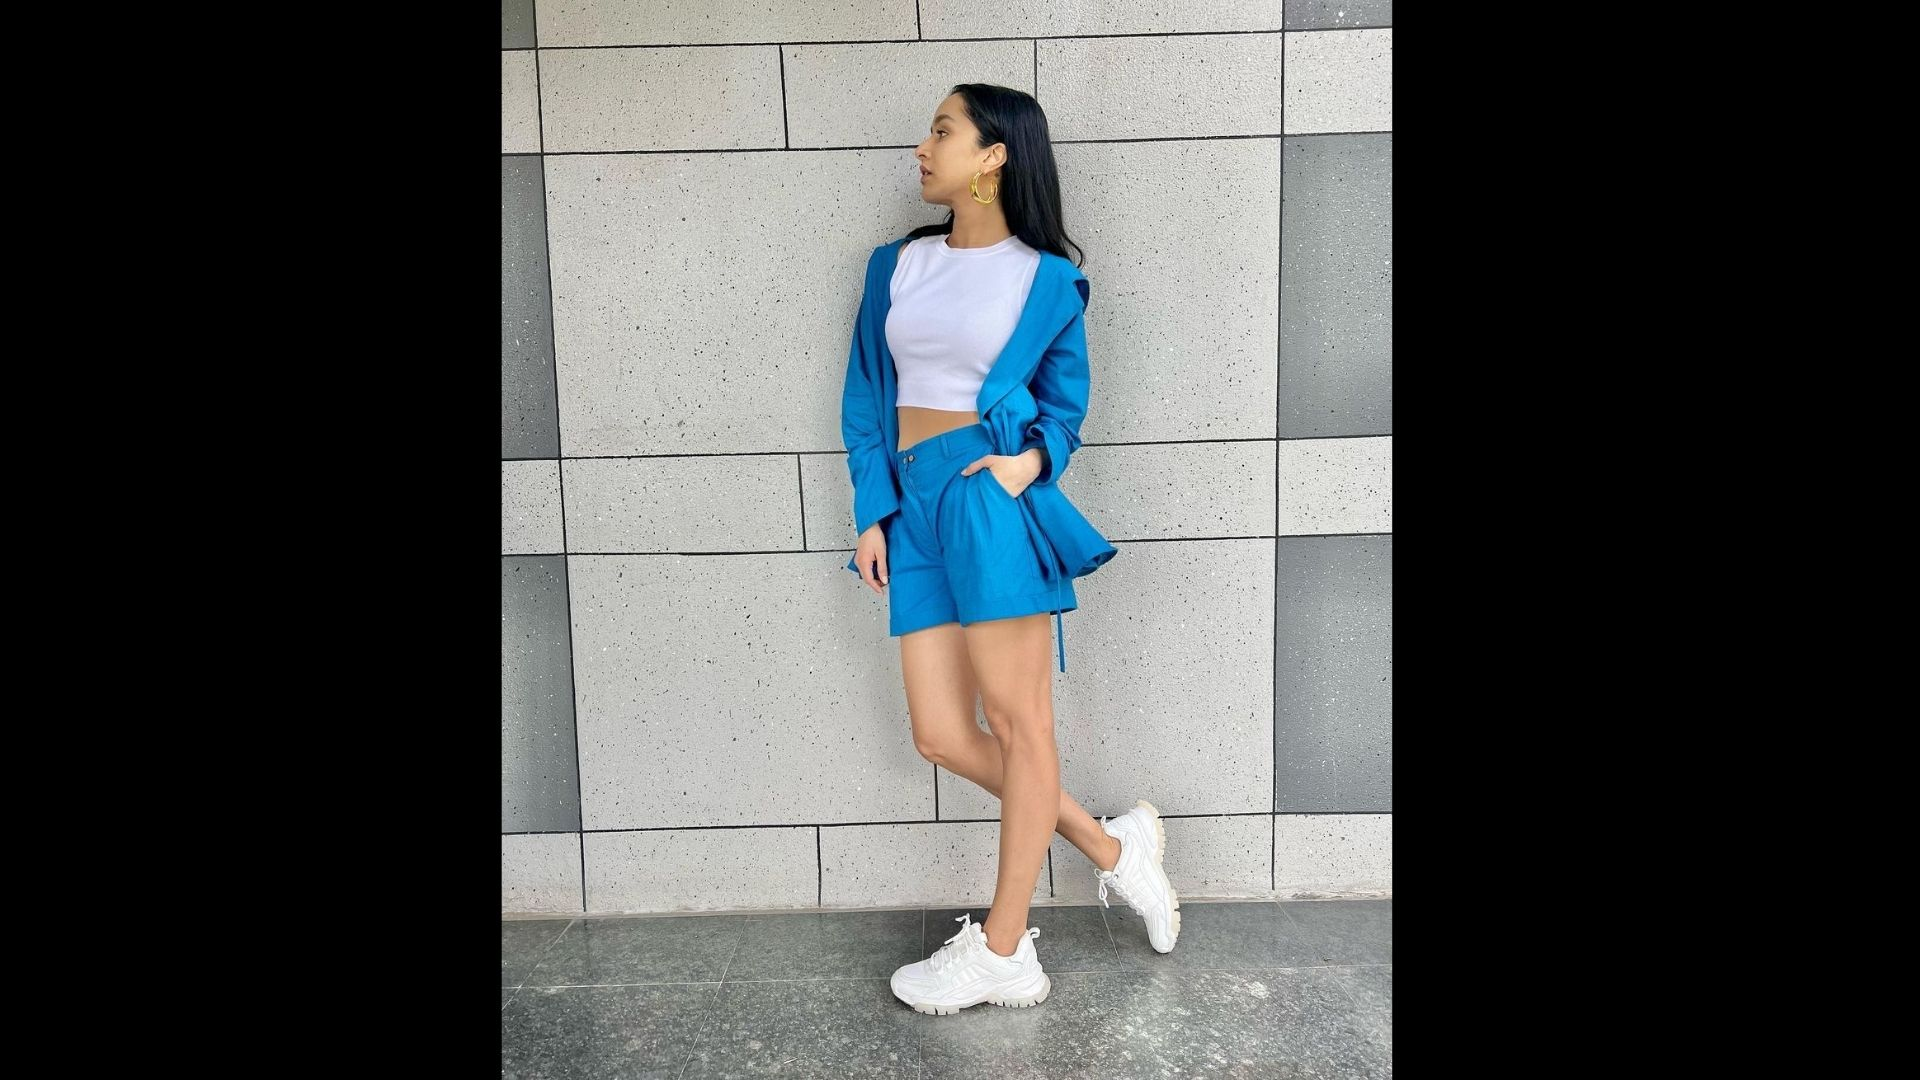 Shraddha Kapoor Power Dresses Her Monday And The Look Is Super Chic